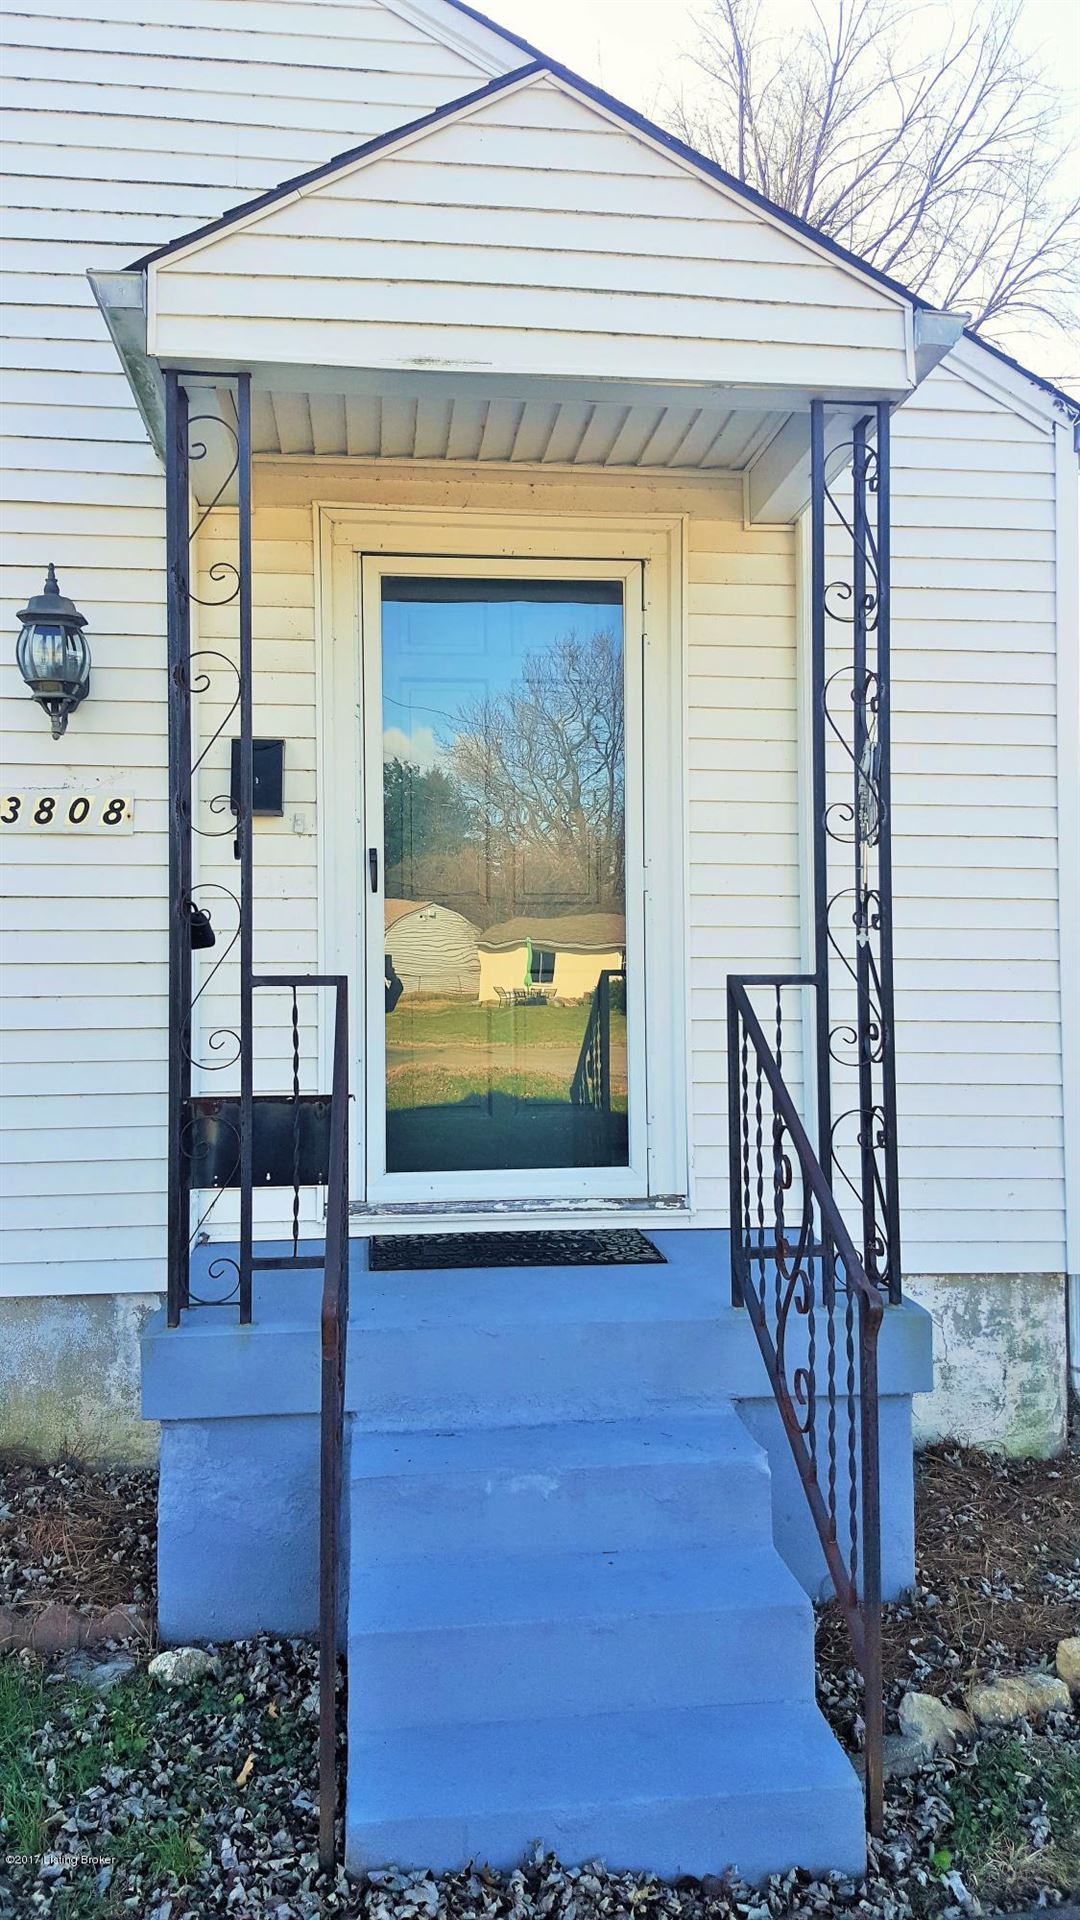 Photo for 3808 Staebler Ave, Louisville, KY 40207 (MLS # 1578573)